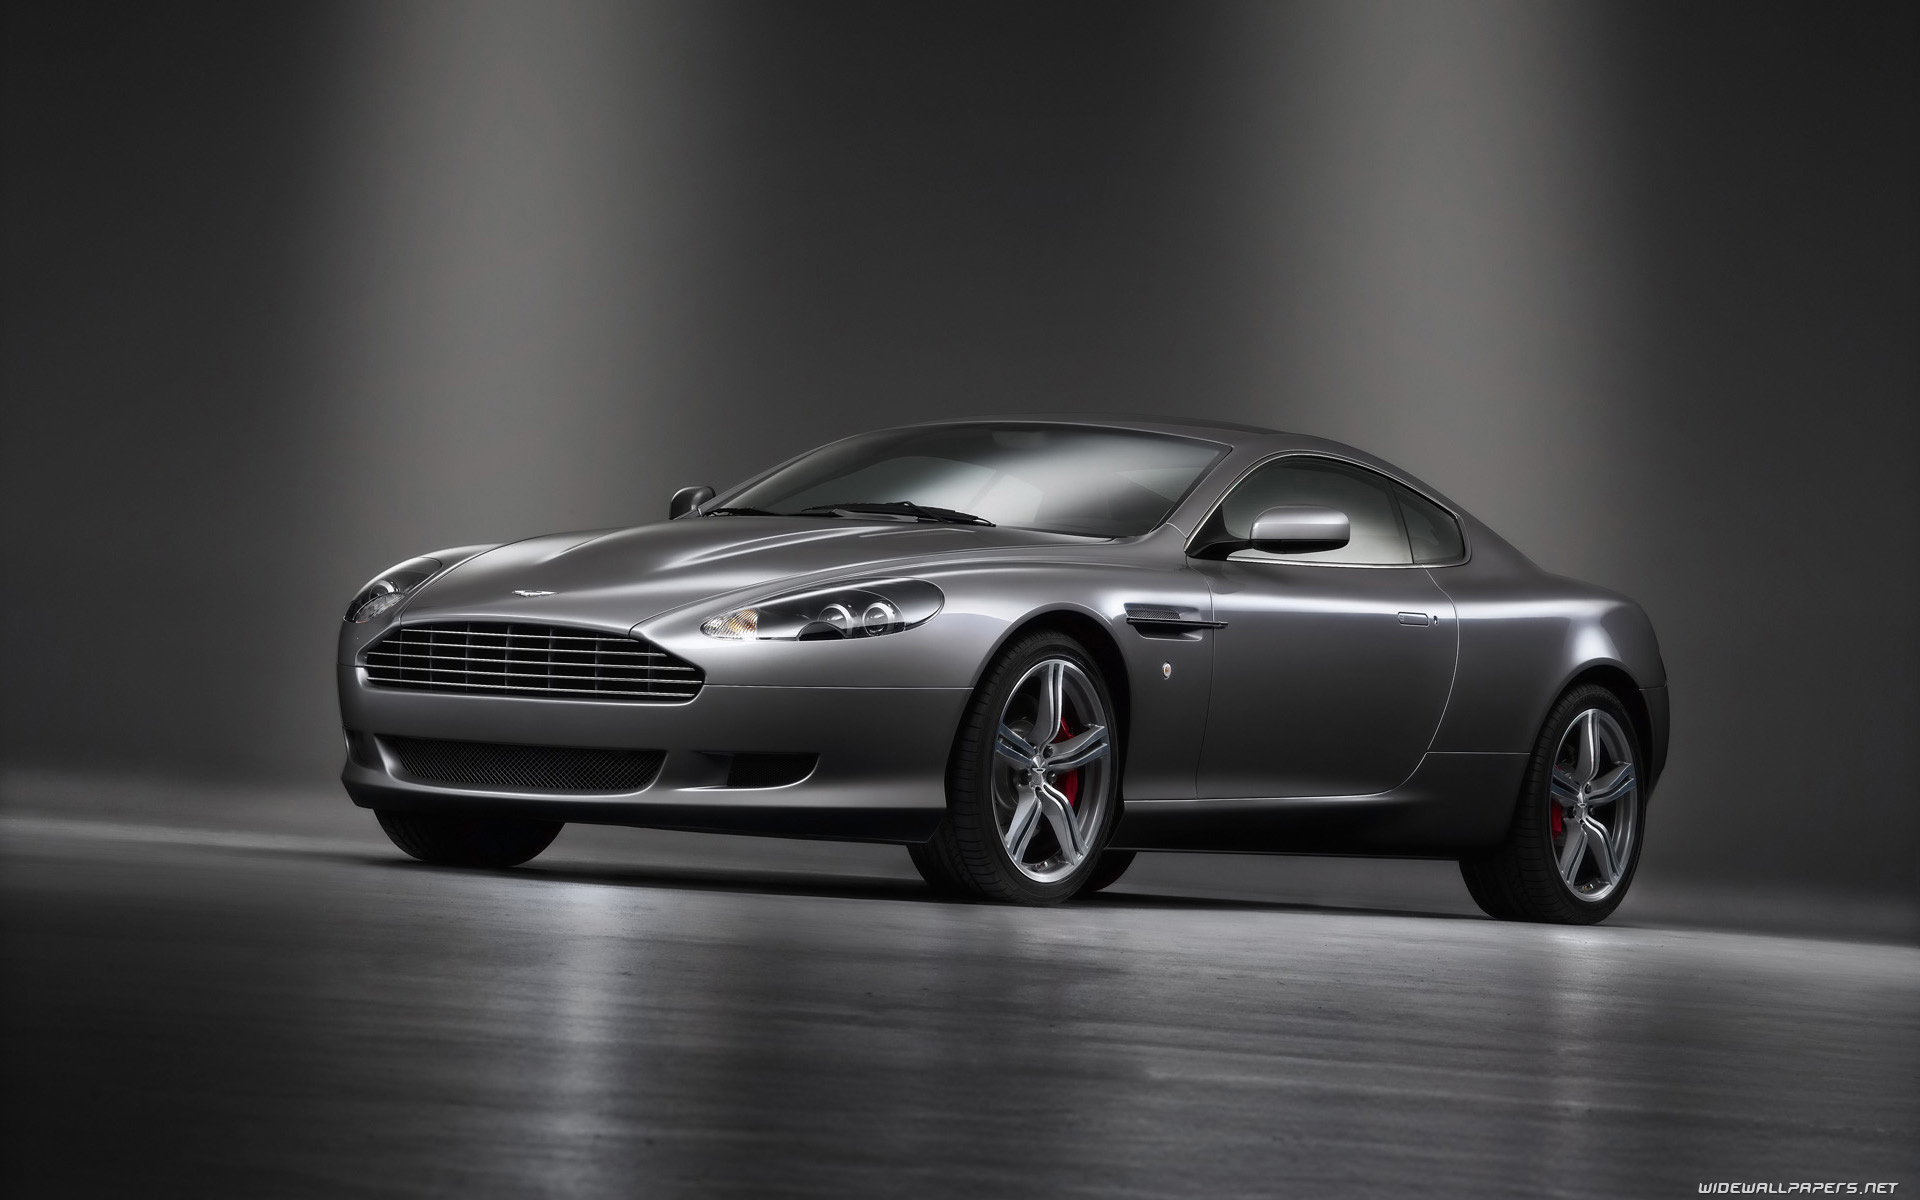 Aston Martin Cars Desktop Wallpapers Hd And Wide Wallpapers